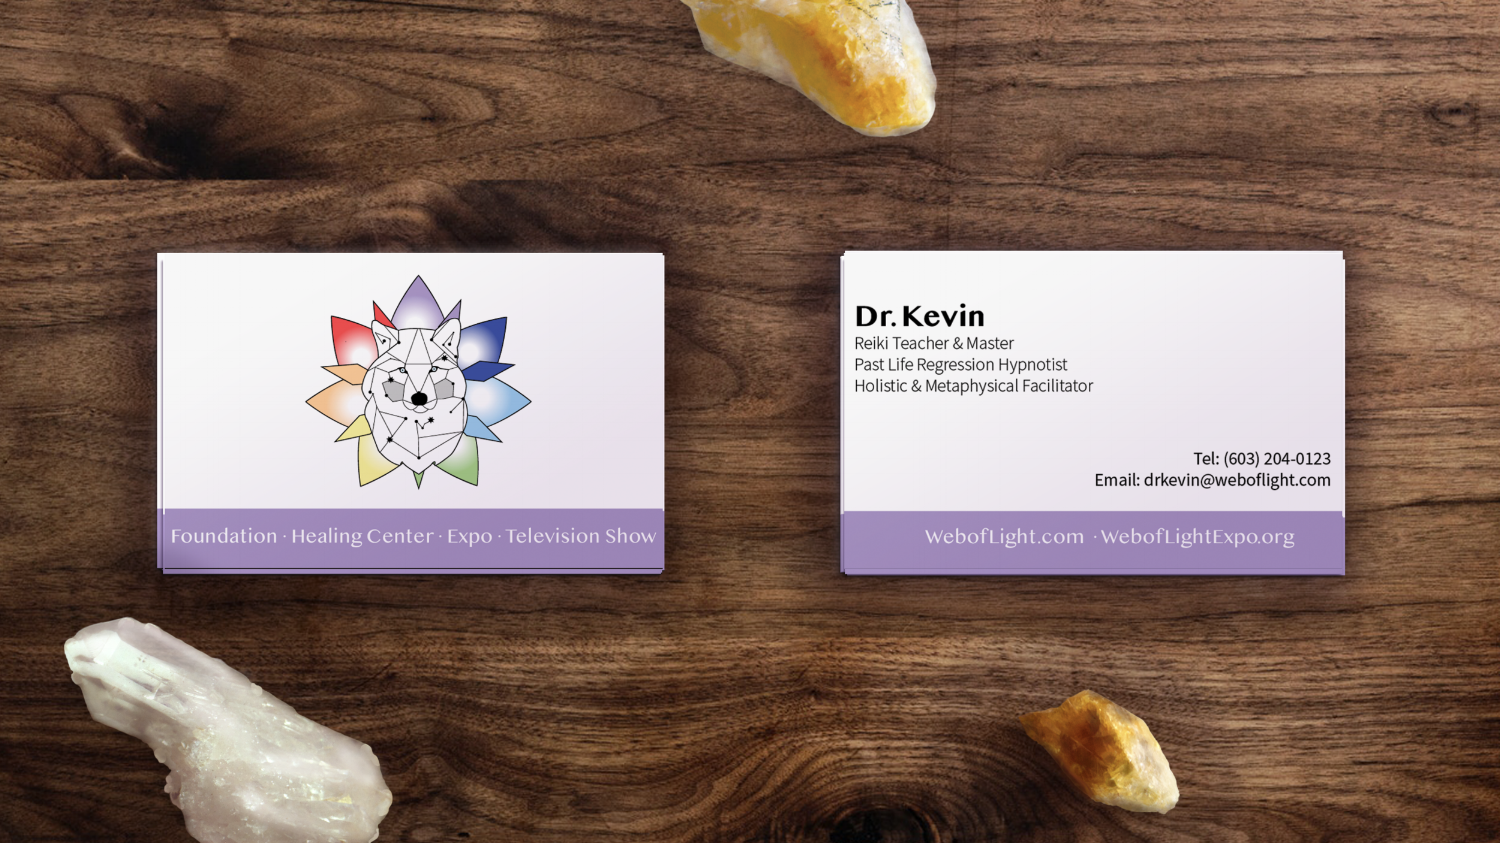 Modest business cards designed for cofounders of the foundation highlighting individual expertise & directing recipient to the WOLF website.